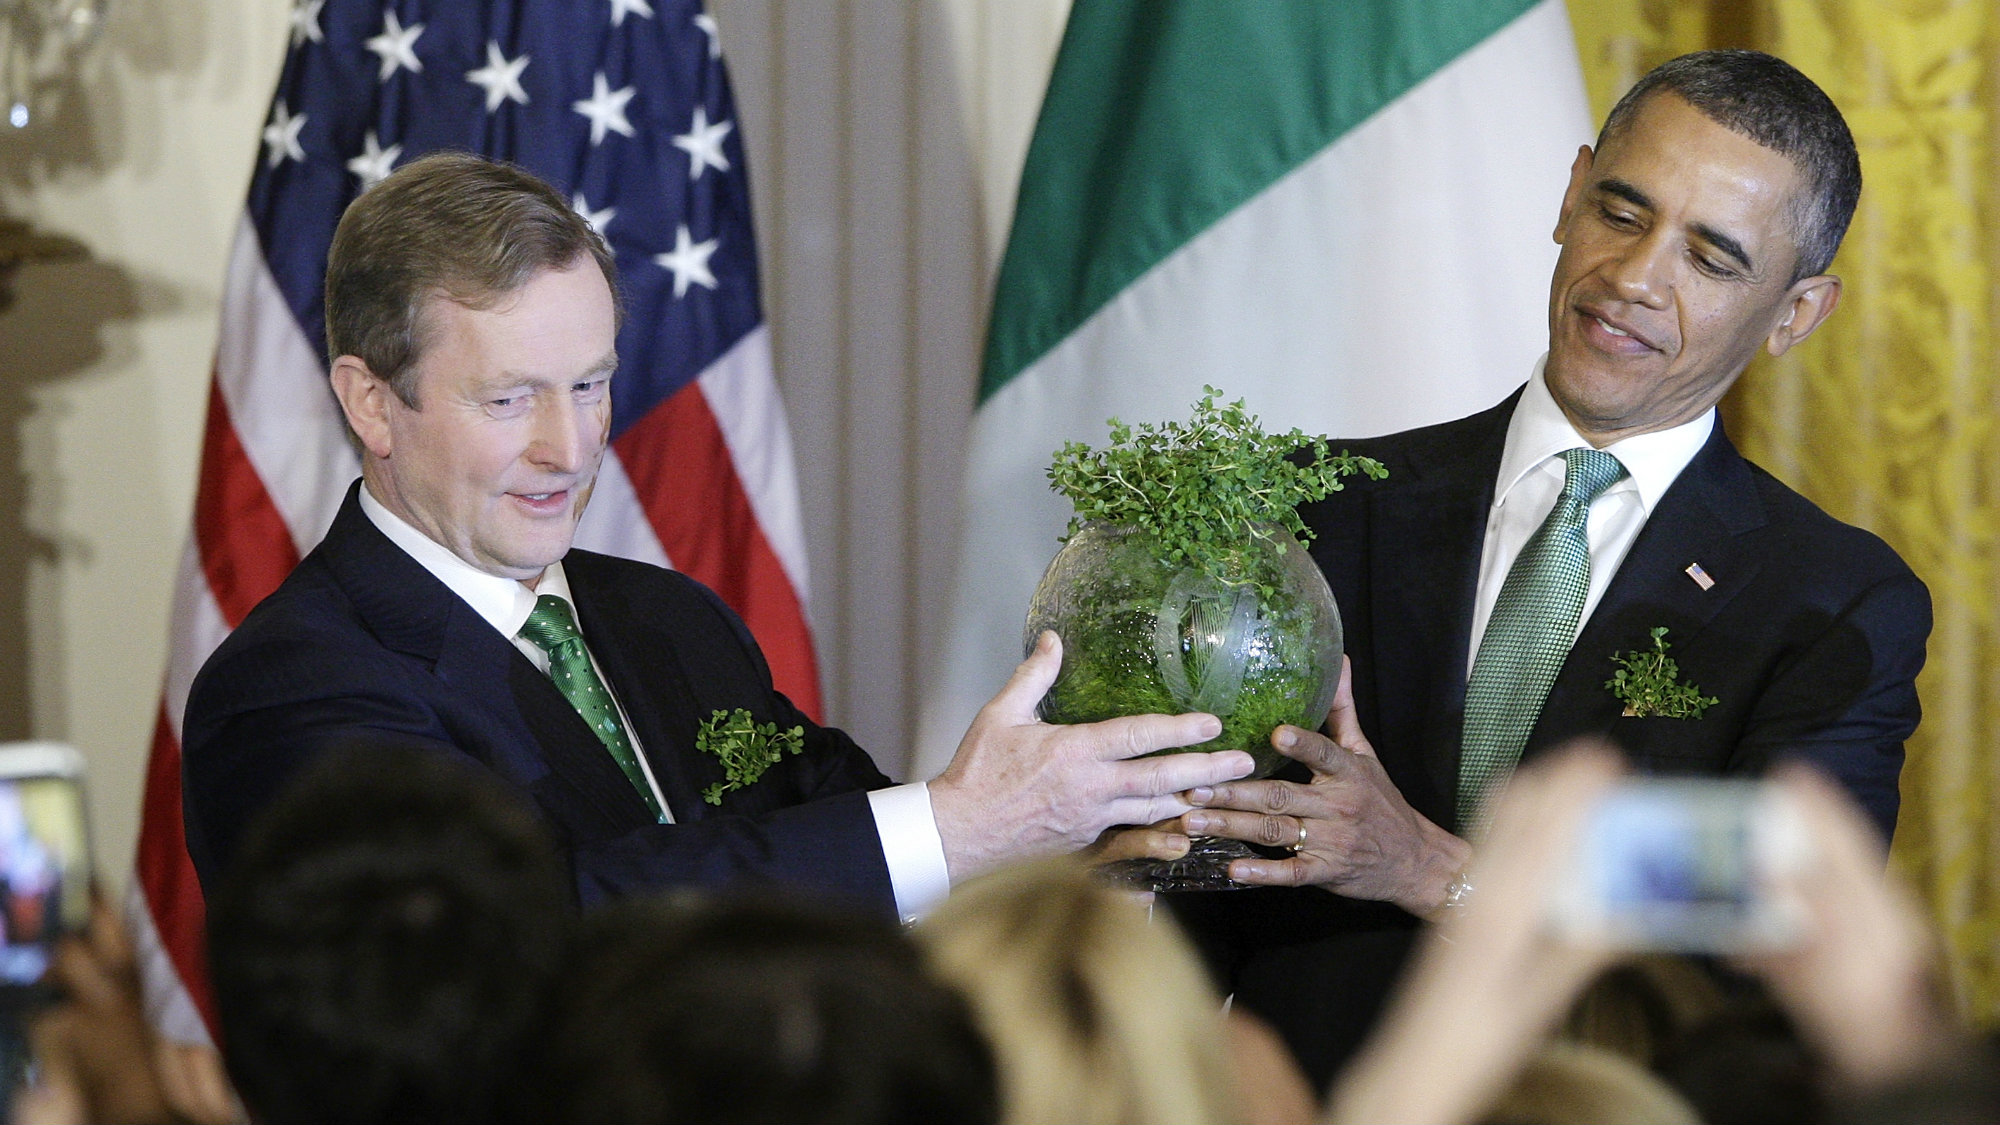 Irish Prime Minister Enda Kenny (L) gives a gift of an etched bowl filled with traditional shamrocks to U.S. President Barack Obama during a St. Patrick's Day reception at the White House in Washington, March 19, 2013.